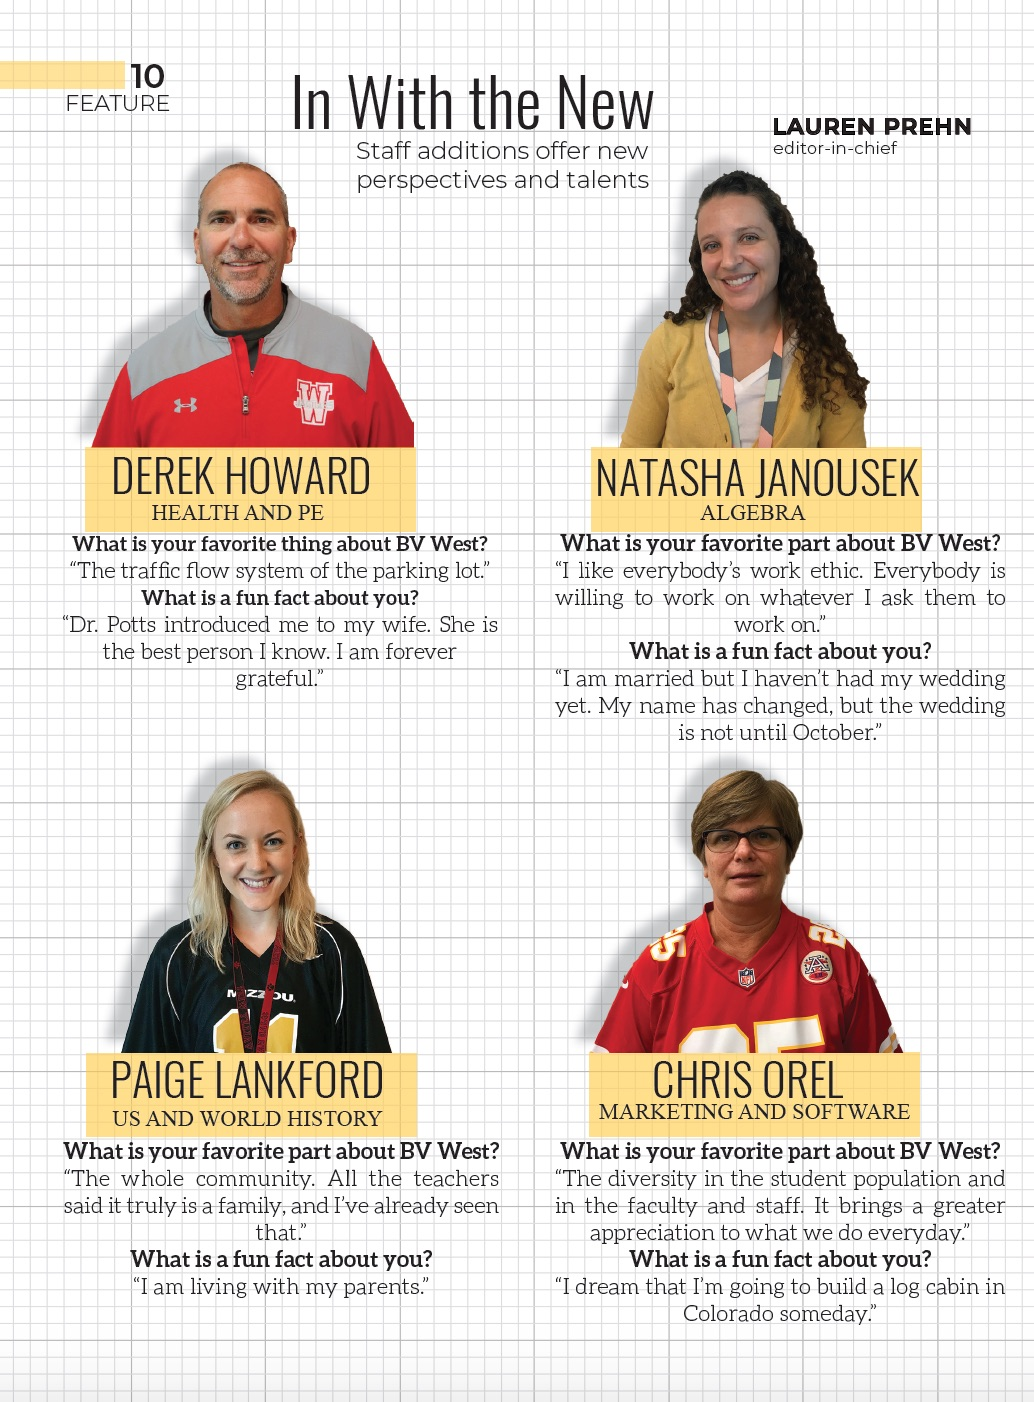 Profiles of teachers new to BV West